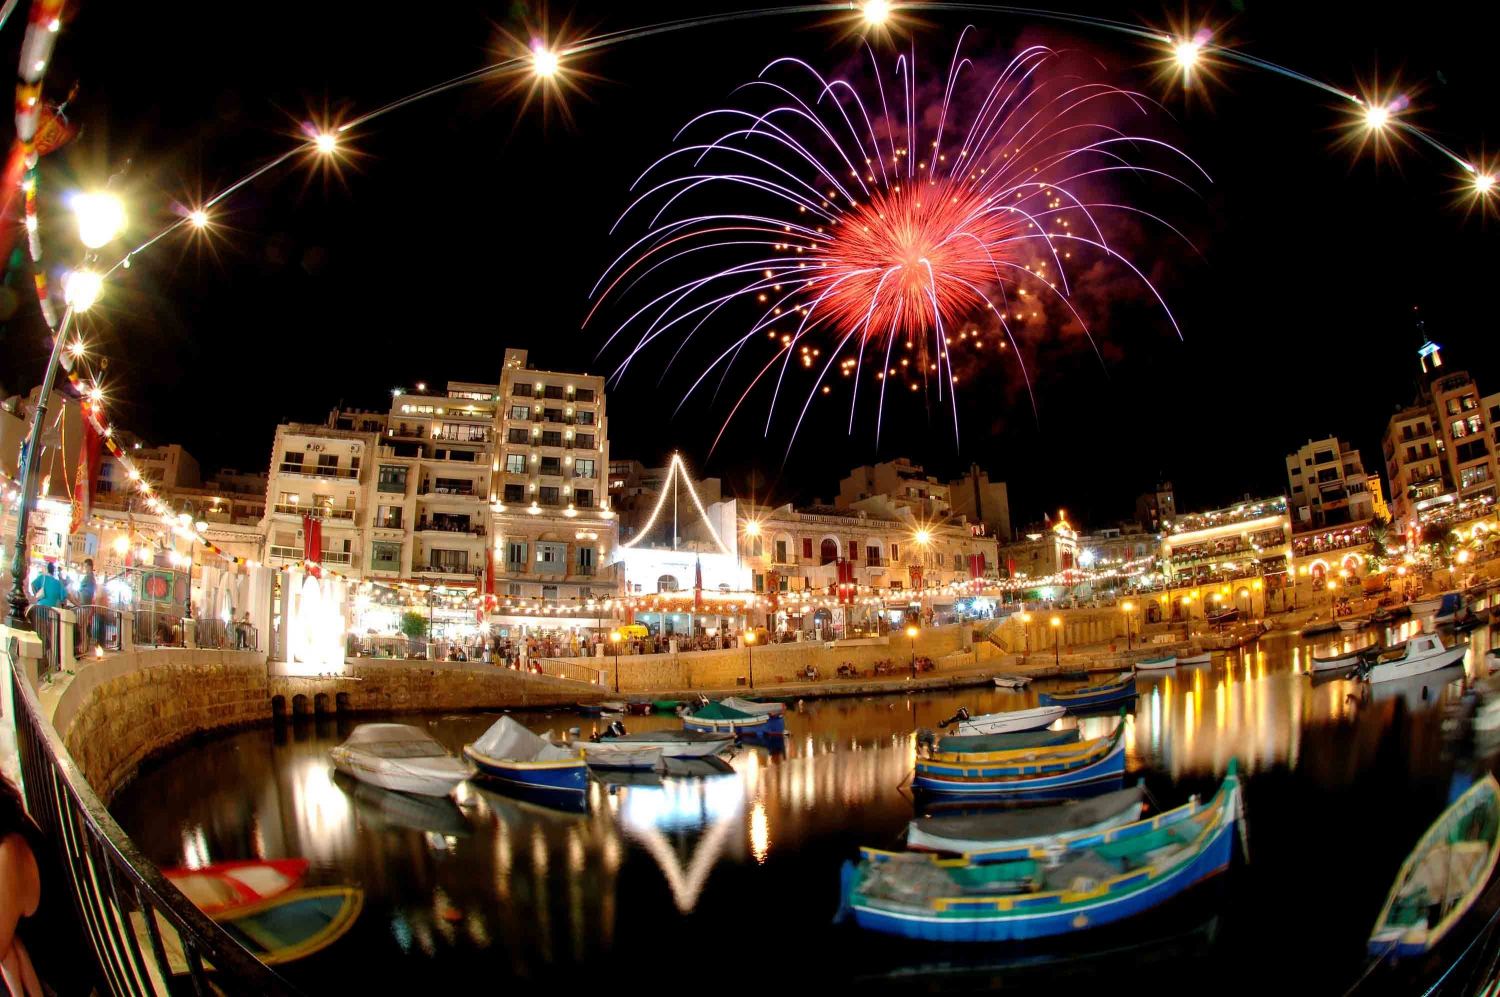 Maltese culture and heritage